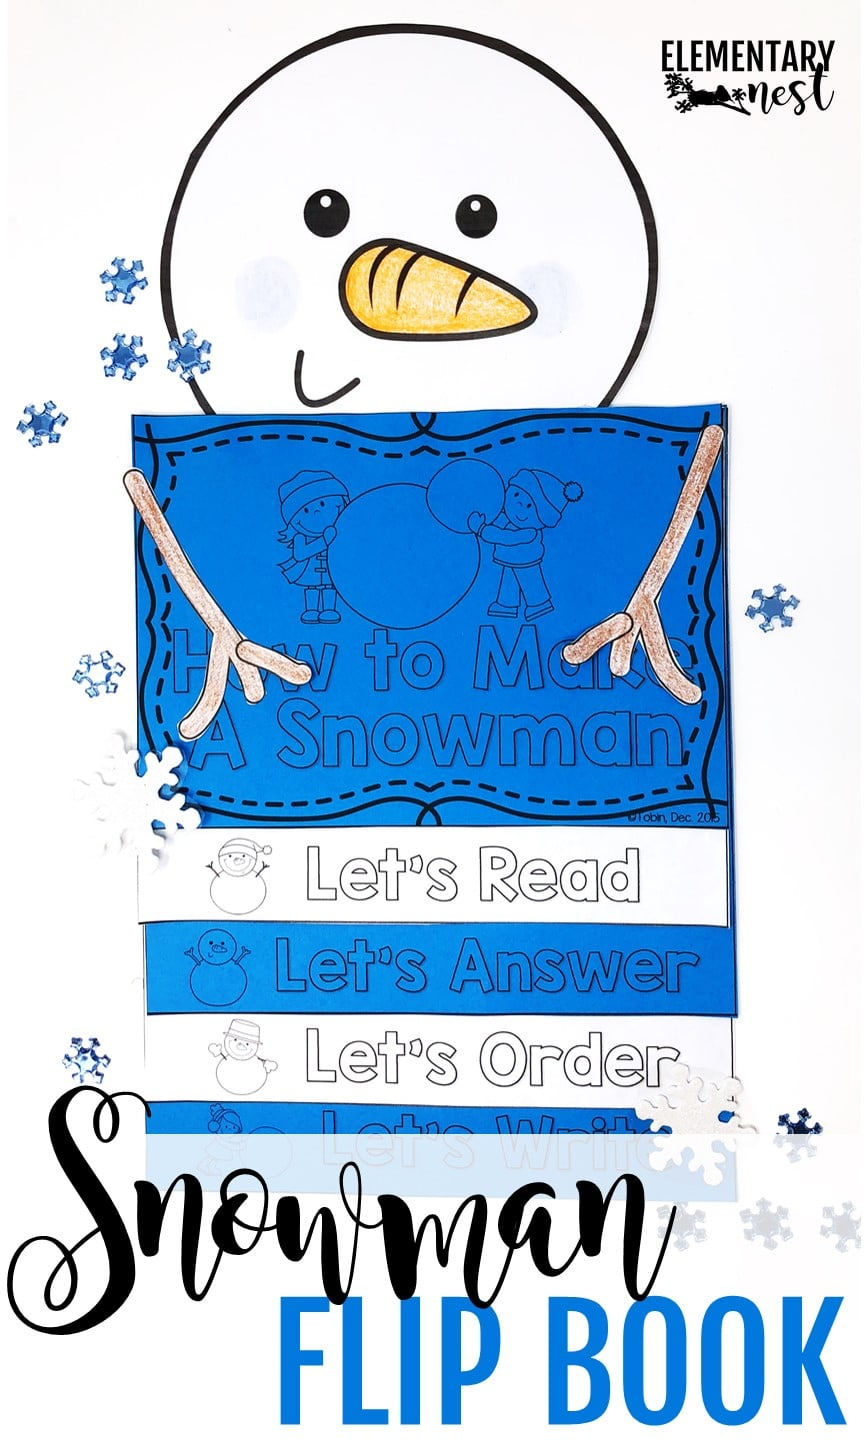 January Resources for K-3 - Snowman reading and snowman activities.